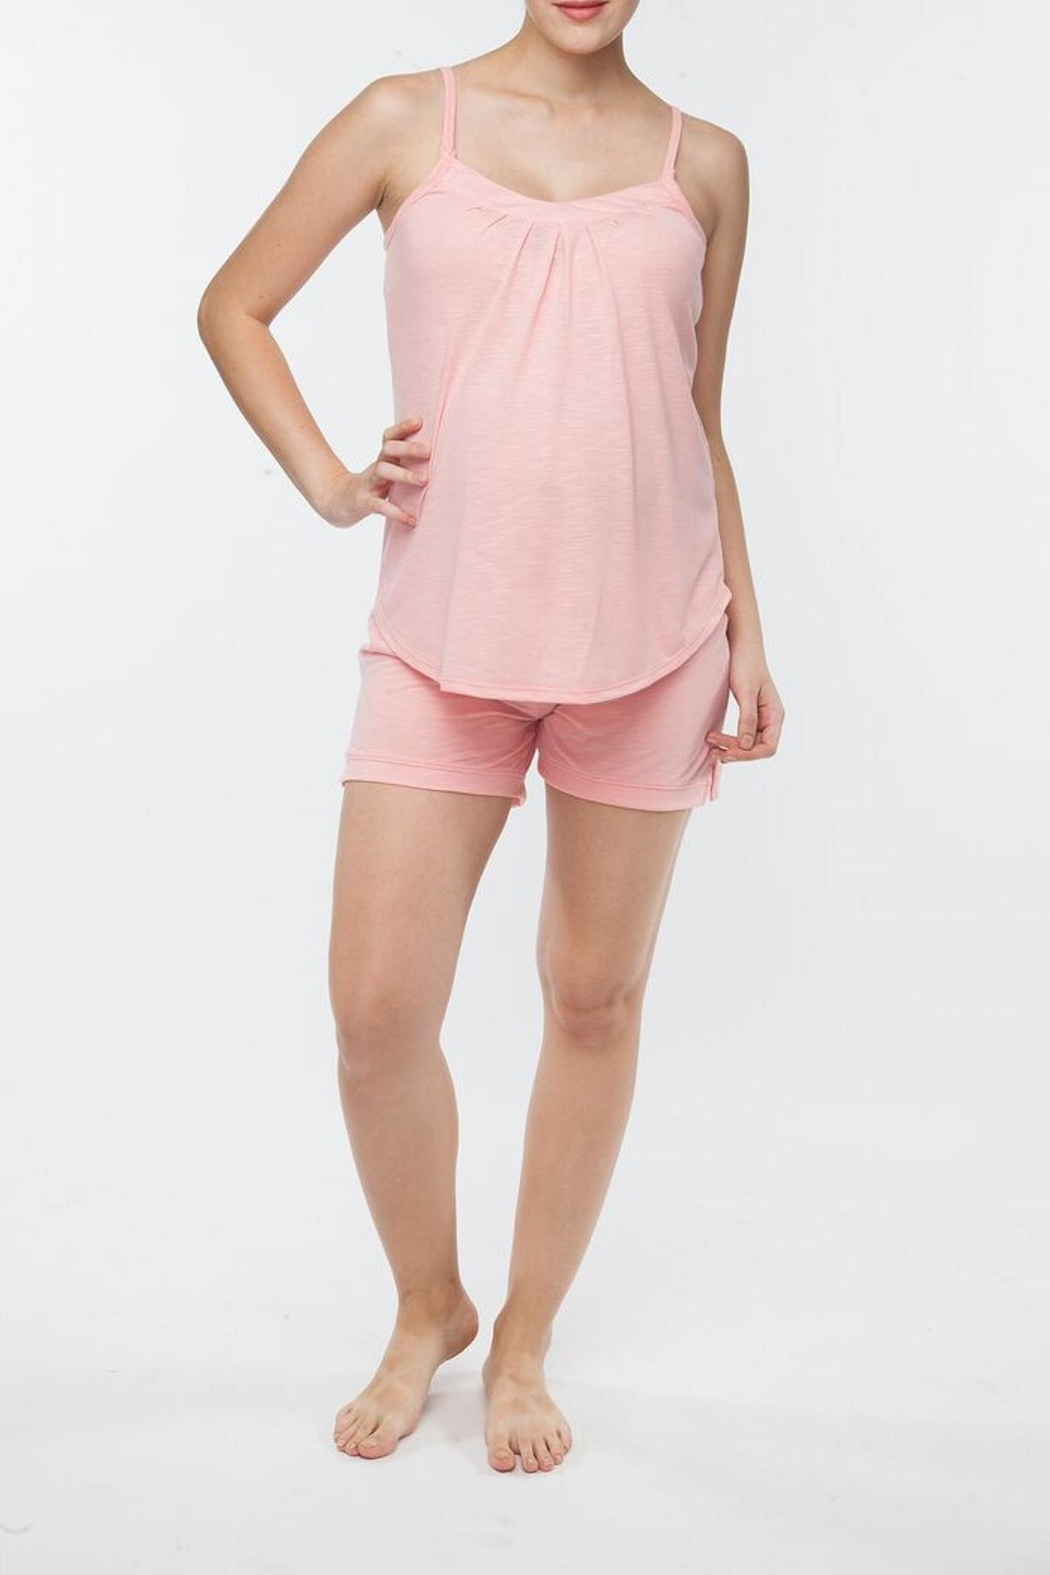 Belabumbum Nursing Loungewear Set - Main Image